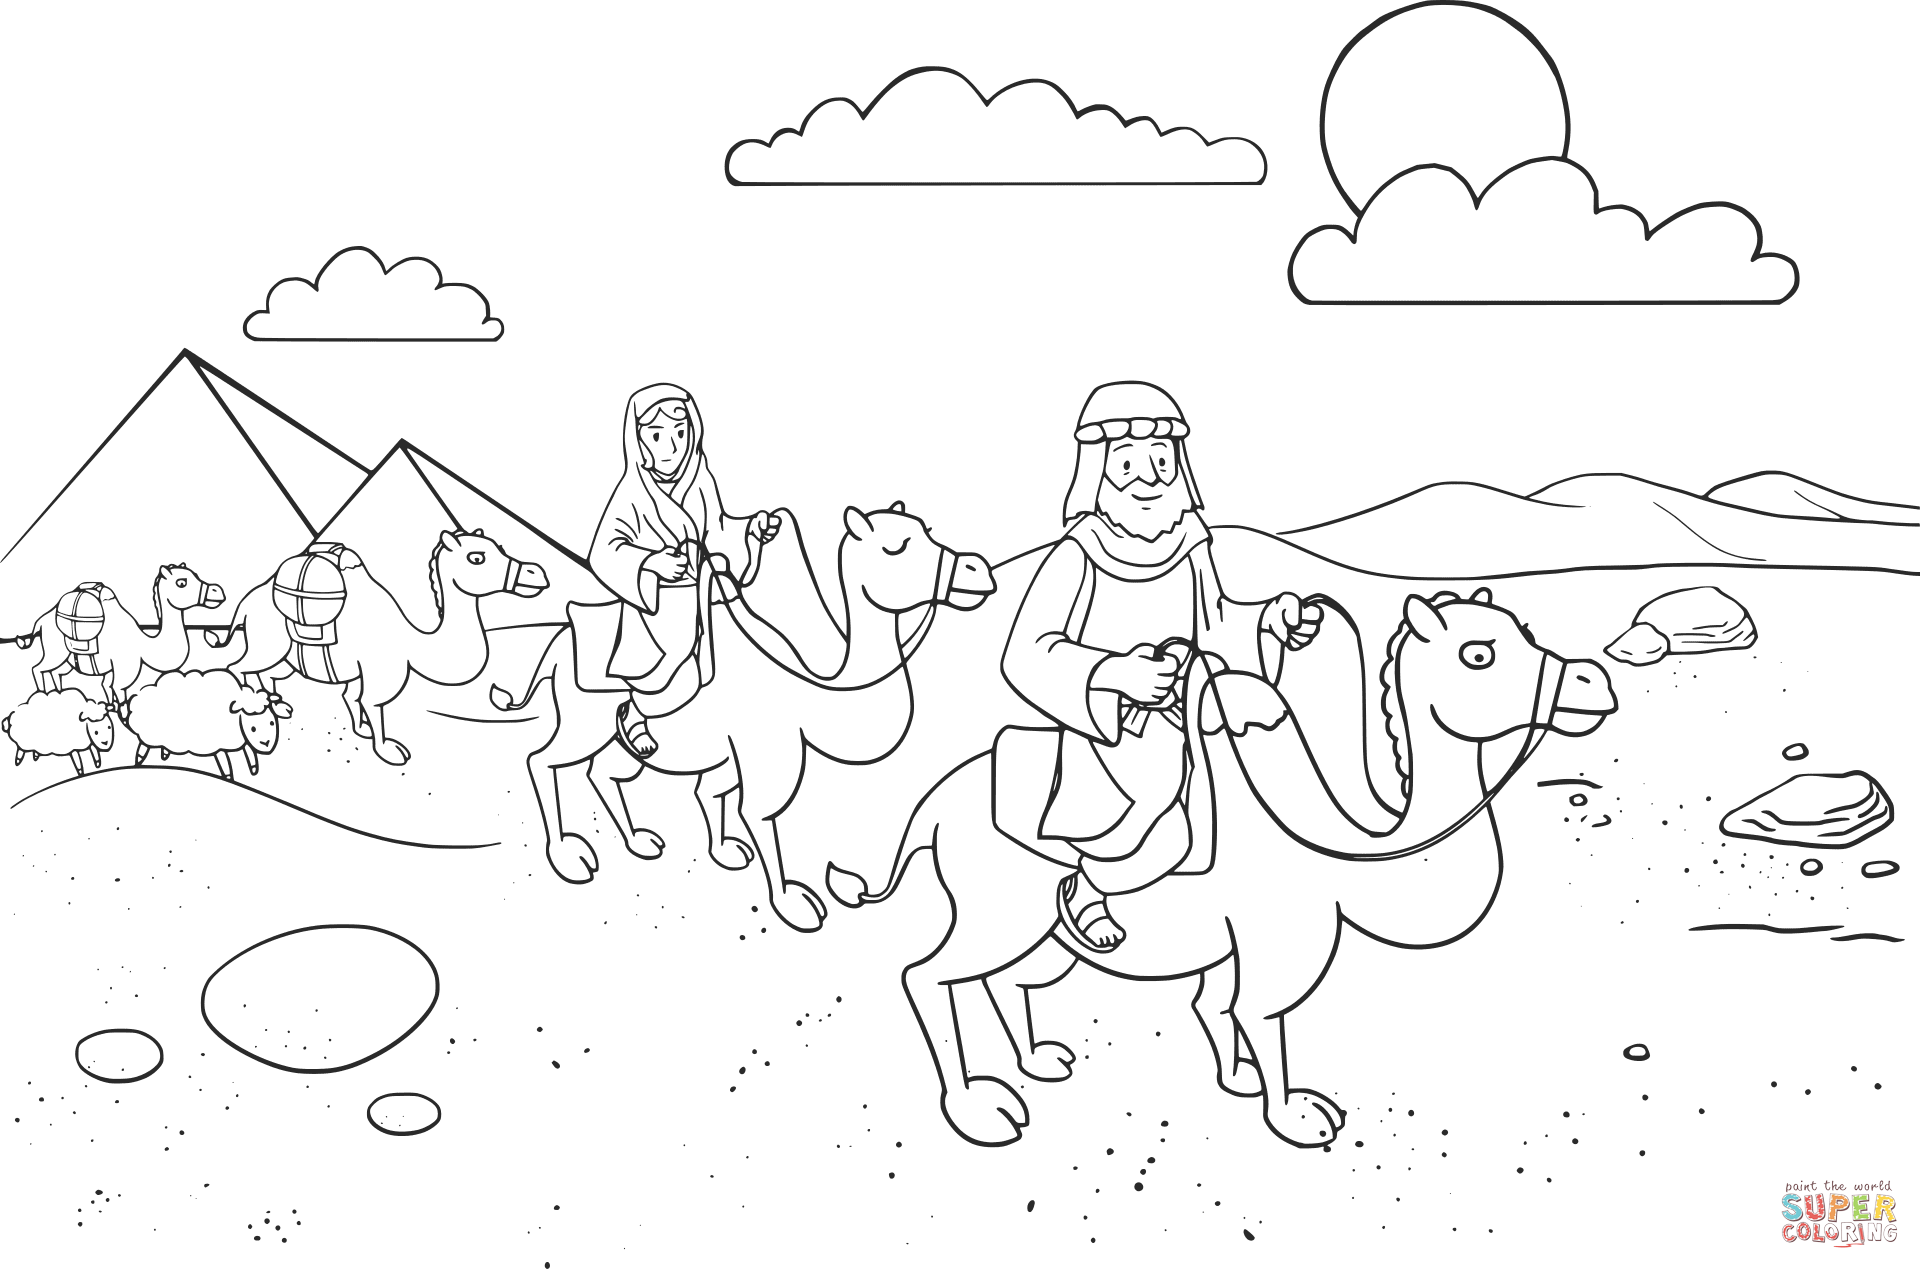 Abram Sarai Leaving Egypt Coloring Page From Abraham Category Select From 28356 Printab Abraham And Sarah Bible Coloring Pages Free Printable Coloring Pages